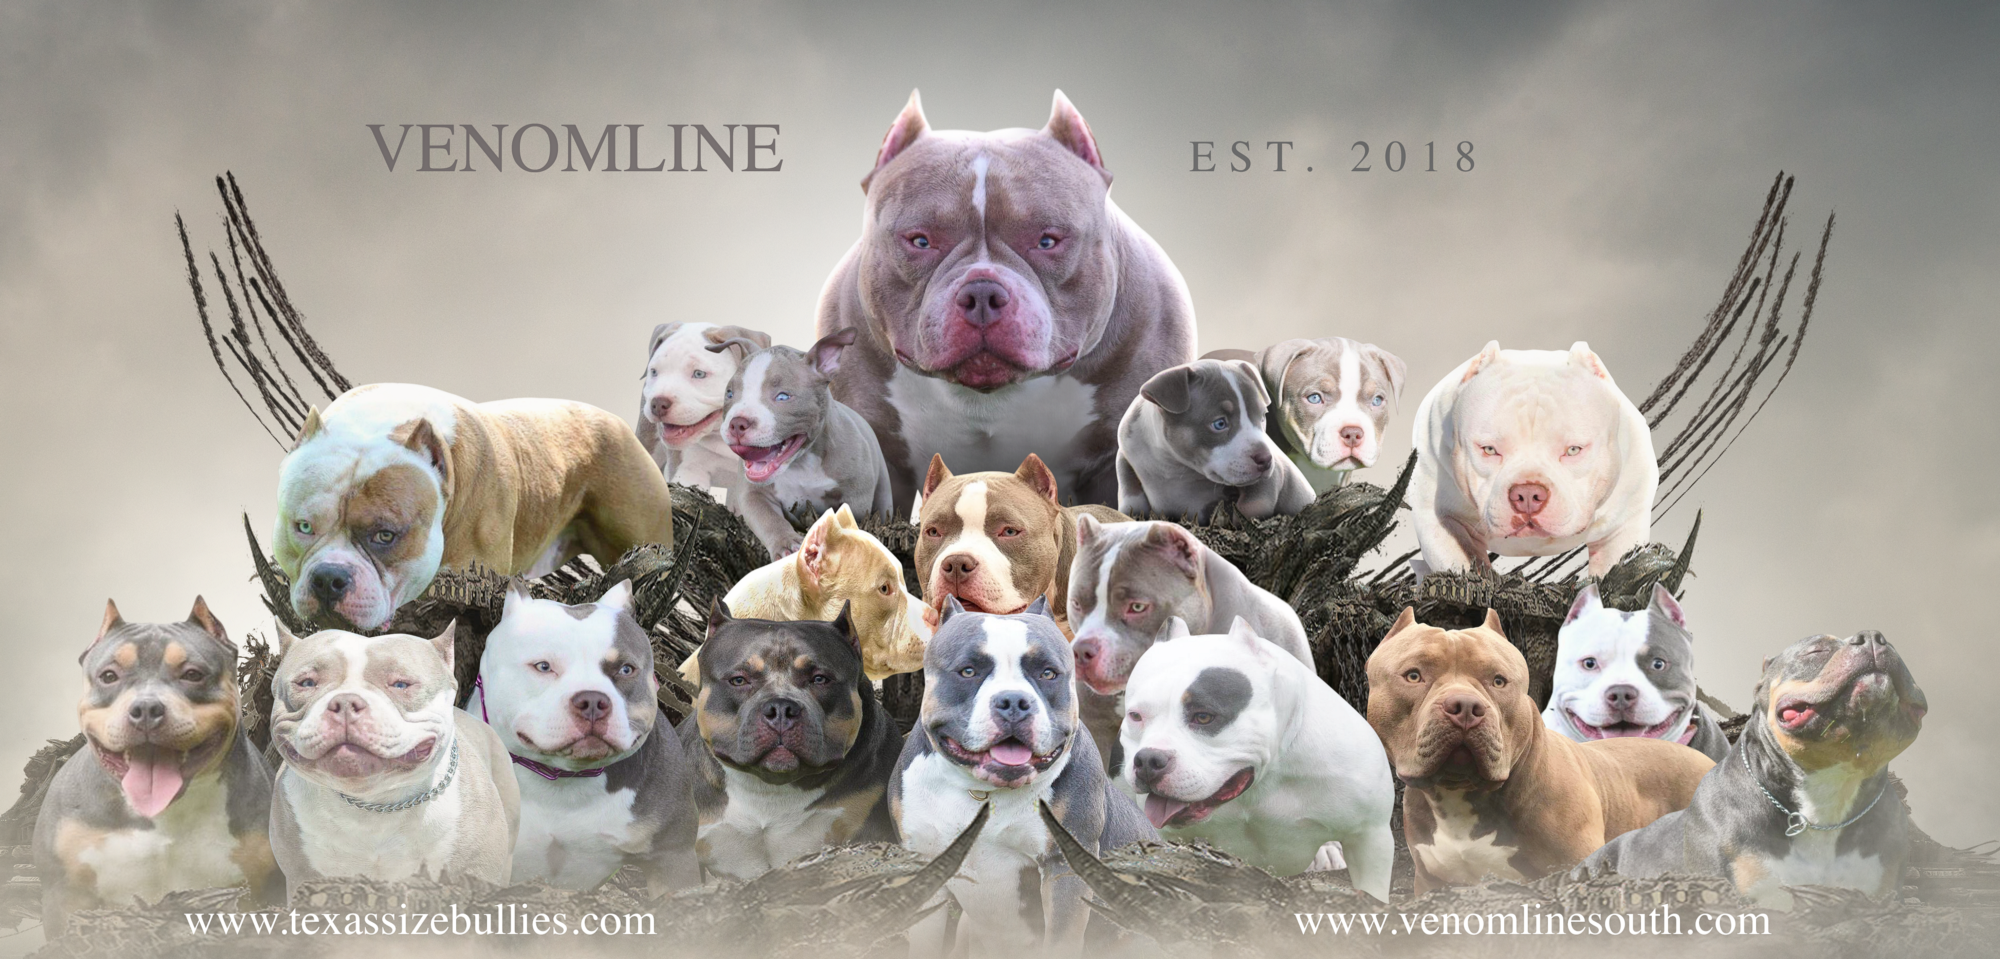 Louis V Line S Venom Meets Magoo Lucky Luciano Puppies Now Available For Sale Pocket Bully American Bully Bully Breeds